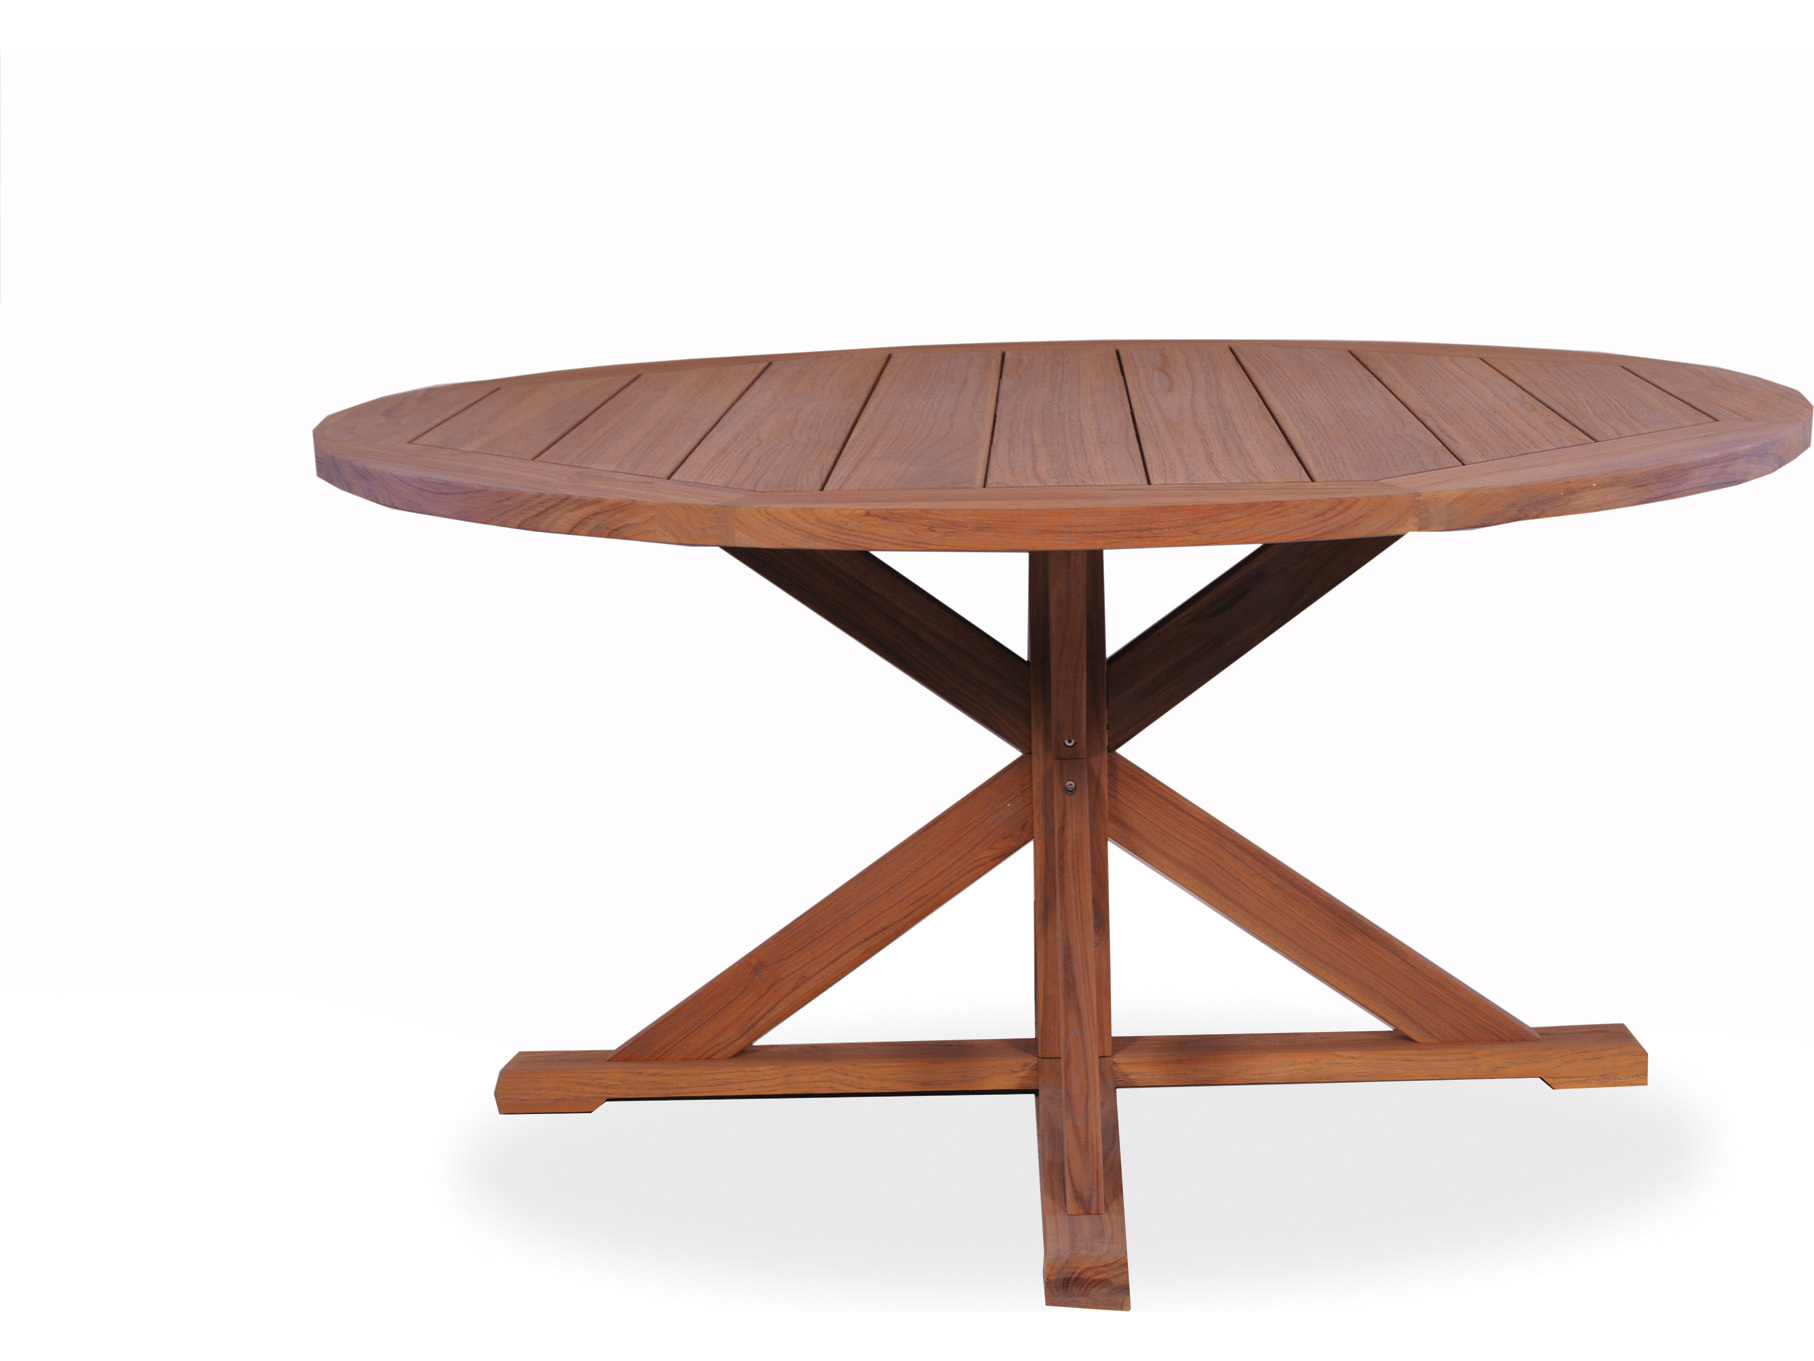 Lloyd flanders teak 60 39 39 round pedestal base dining table for 60 round dining table